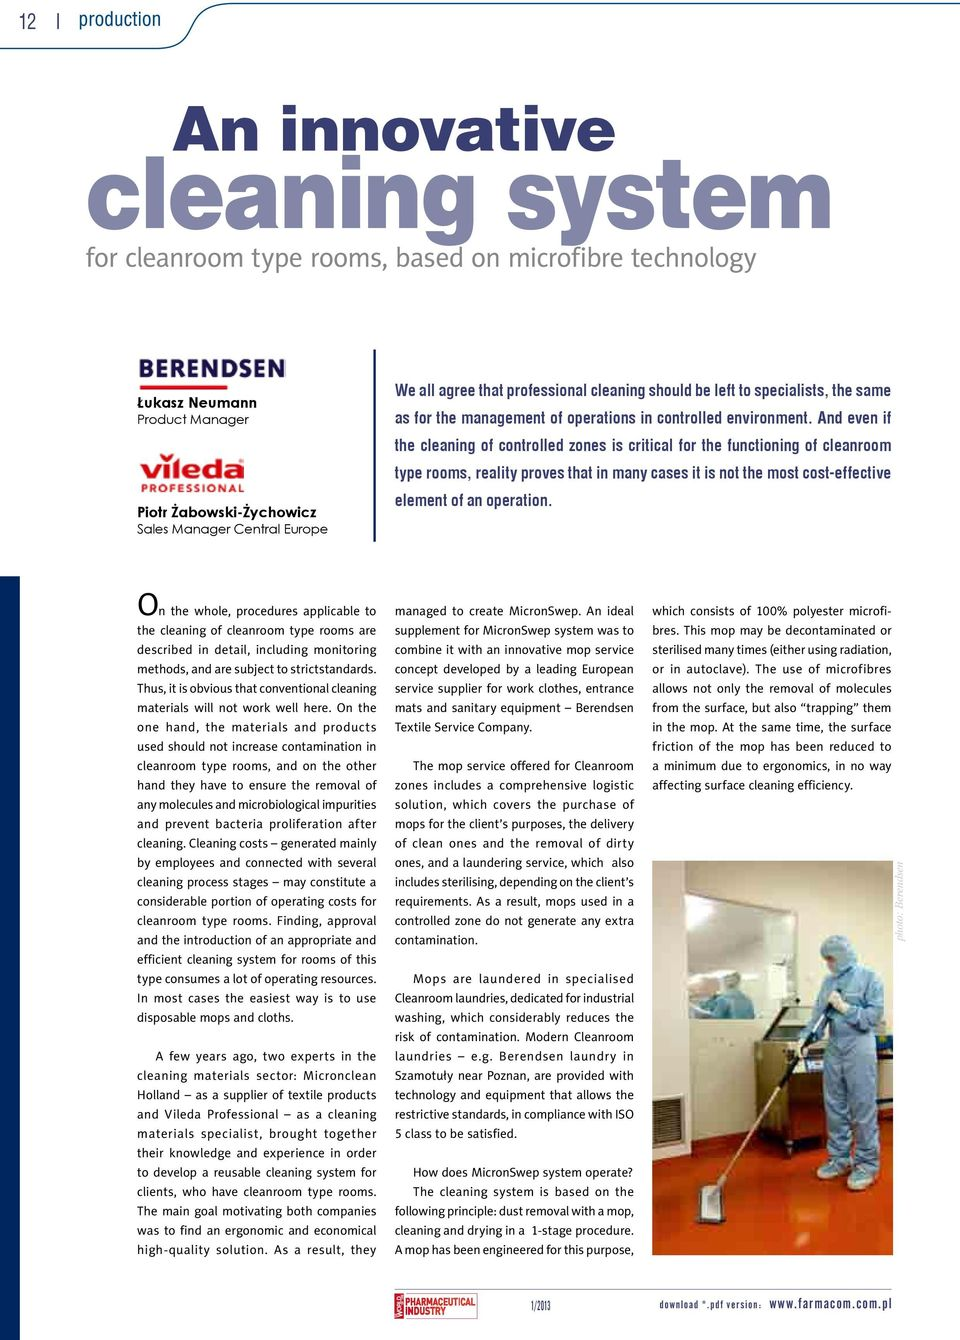 And even if the cleaning of controlled zones is critical for the functioning of cleanroom type rooms, reality proves that in many cases it is not the most cost-effective element of an operation.